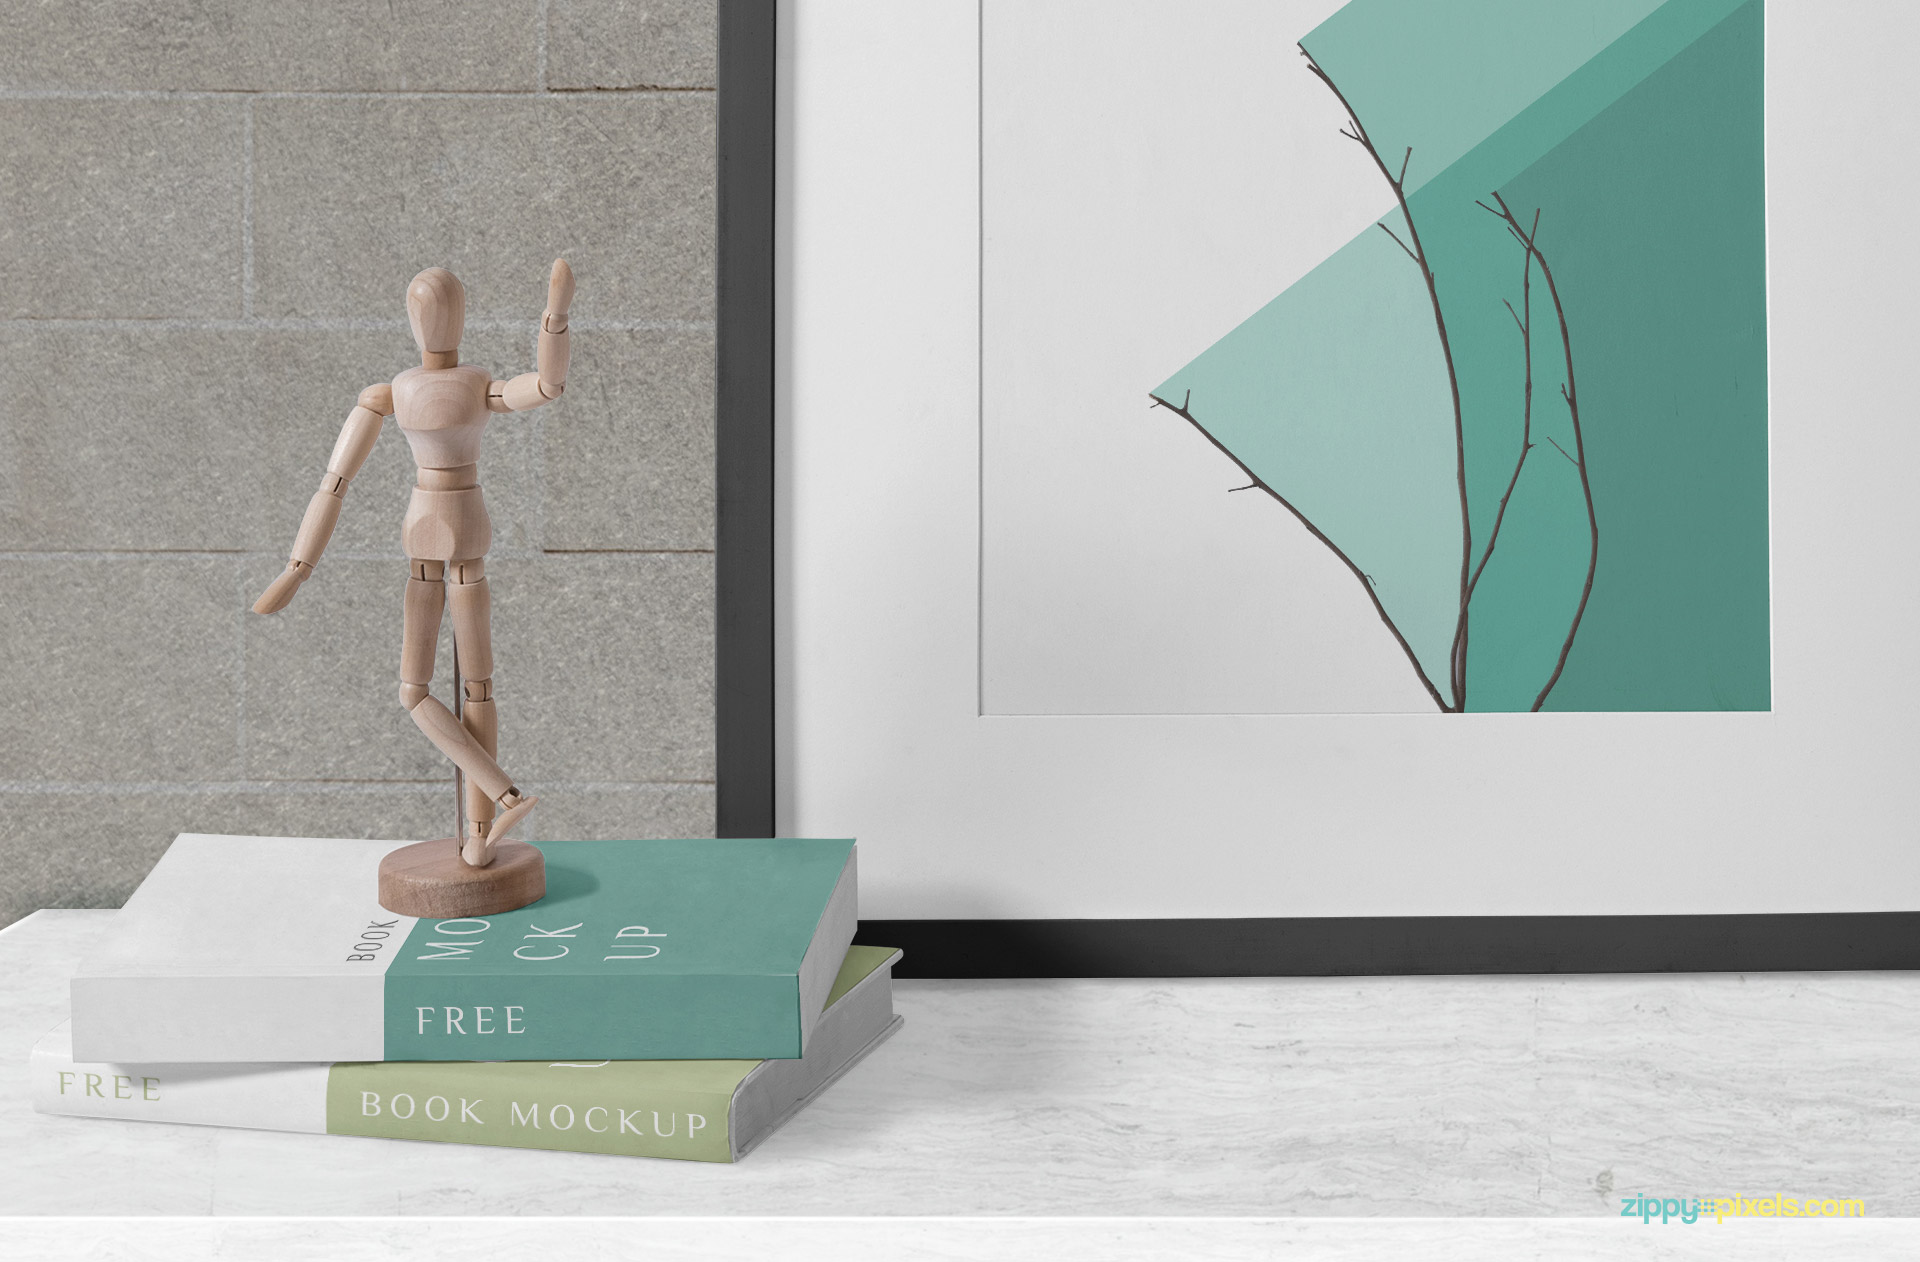 Statue placed on the books mockup.